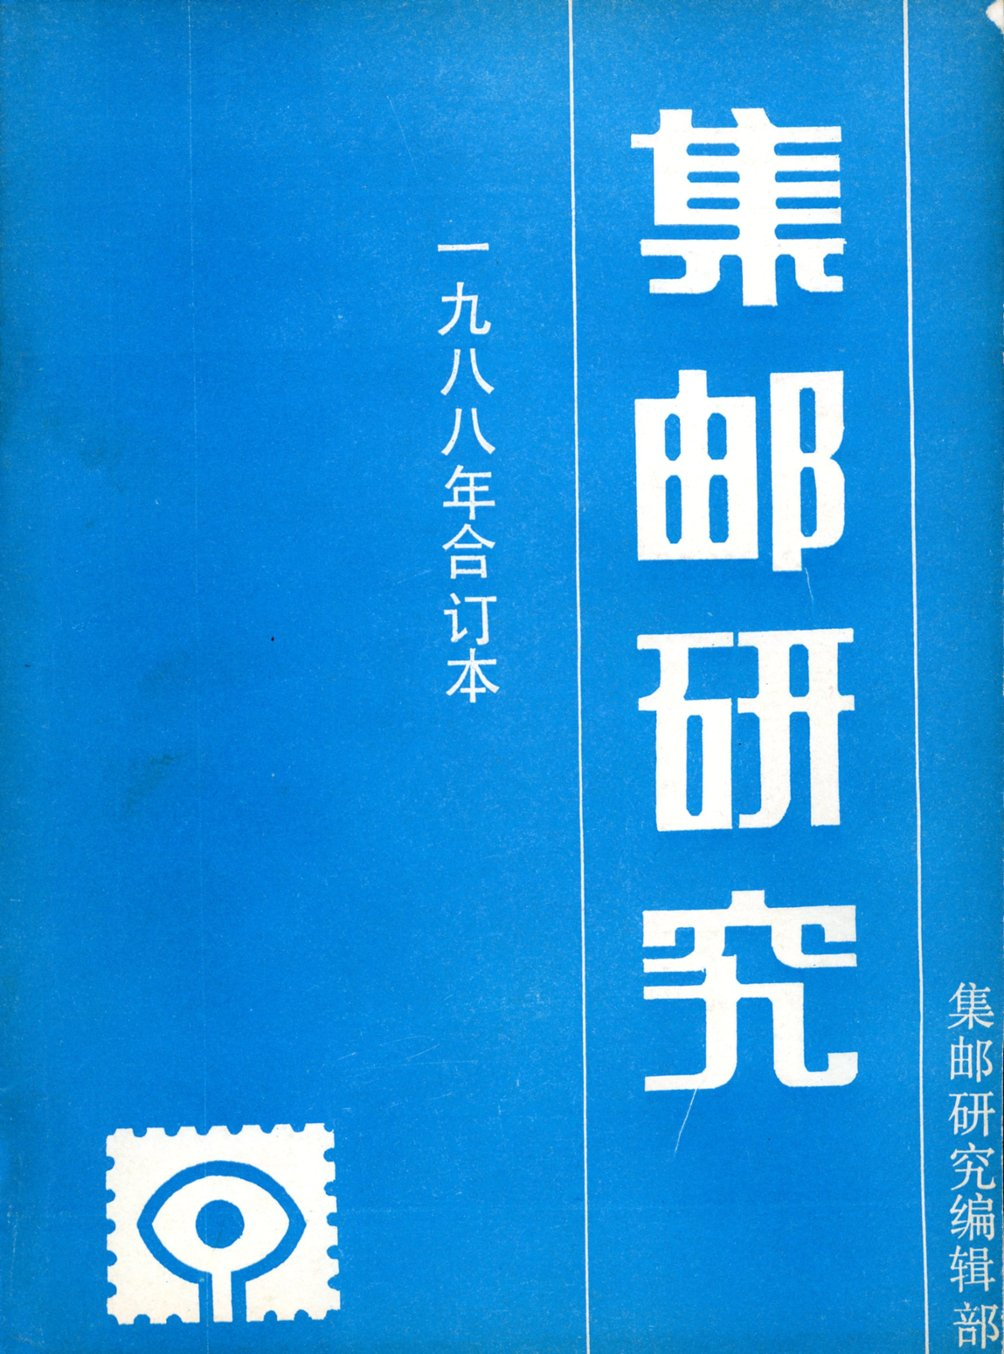 Jiyou Yanjiu (Philatelic Research), 1988 (all 4 issues) softbound in one volume, in Chinese, in very good condition (14 oz)